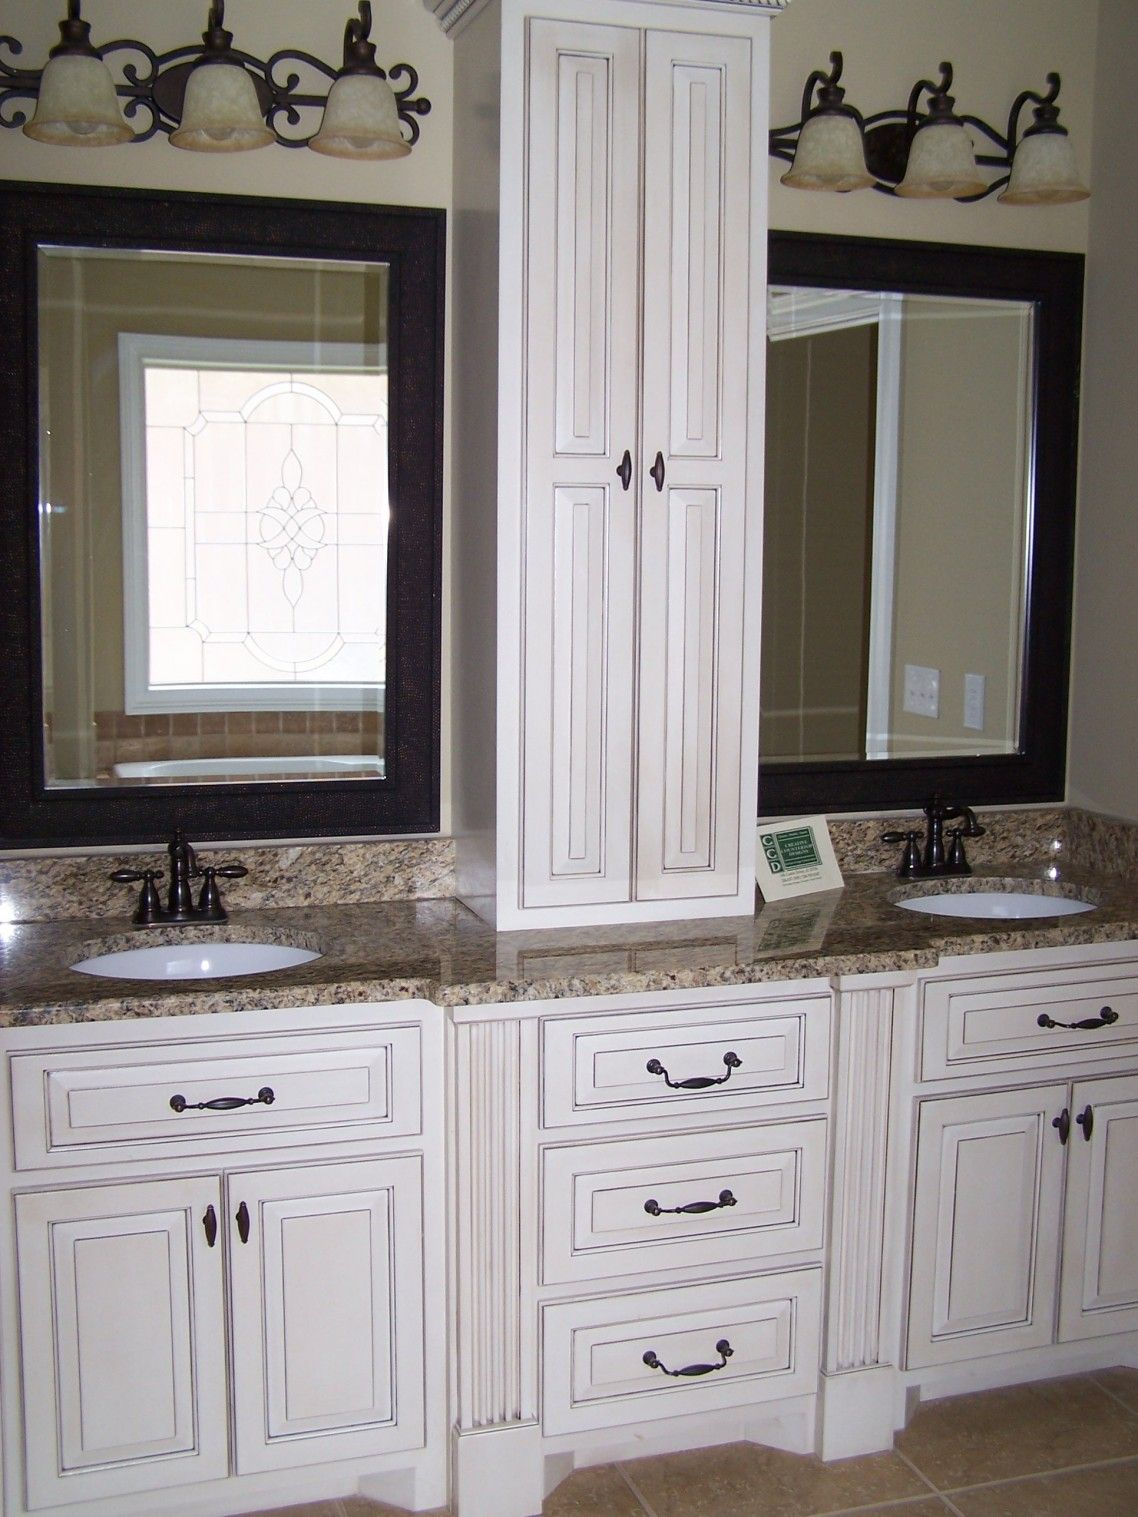 furniture-interior-bathroom-white-kitchen-cabinets-custom-bathroom ...